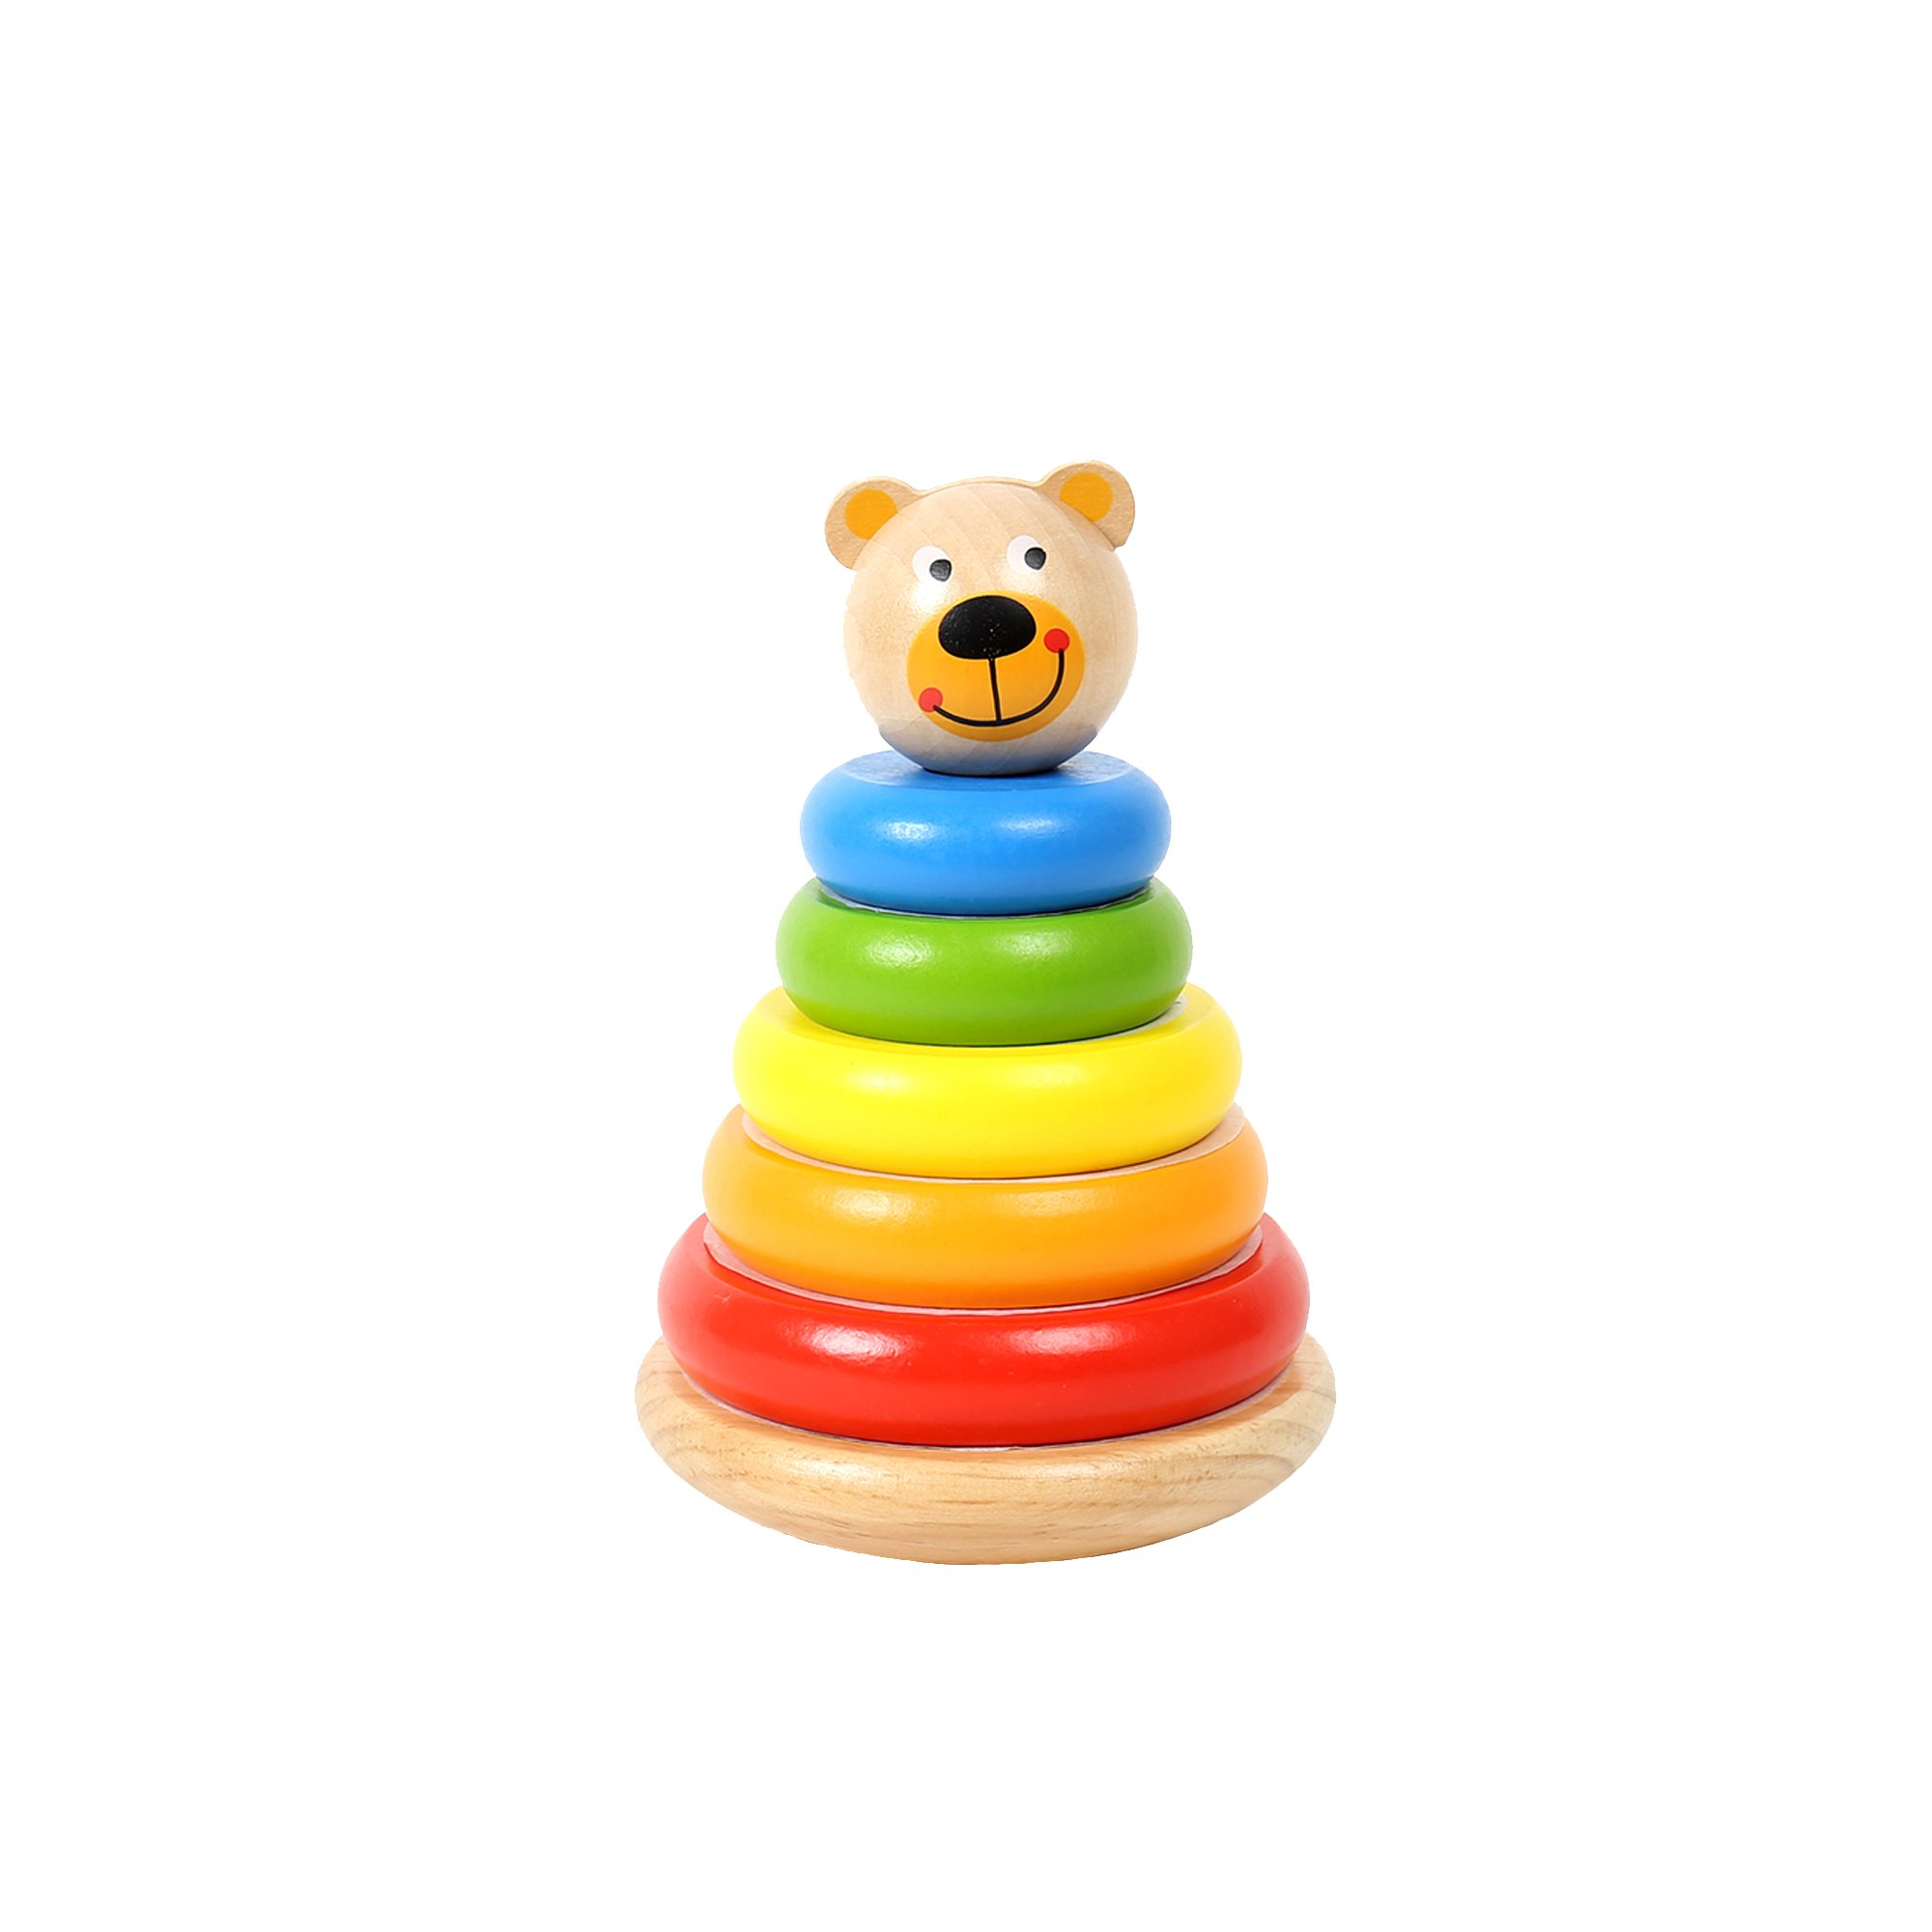 Tooky Toy, 9.84 x 7.48 inches, Bear Stacker, Wood